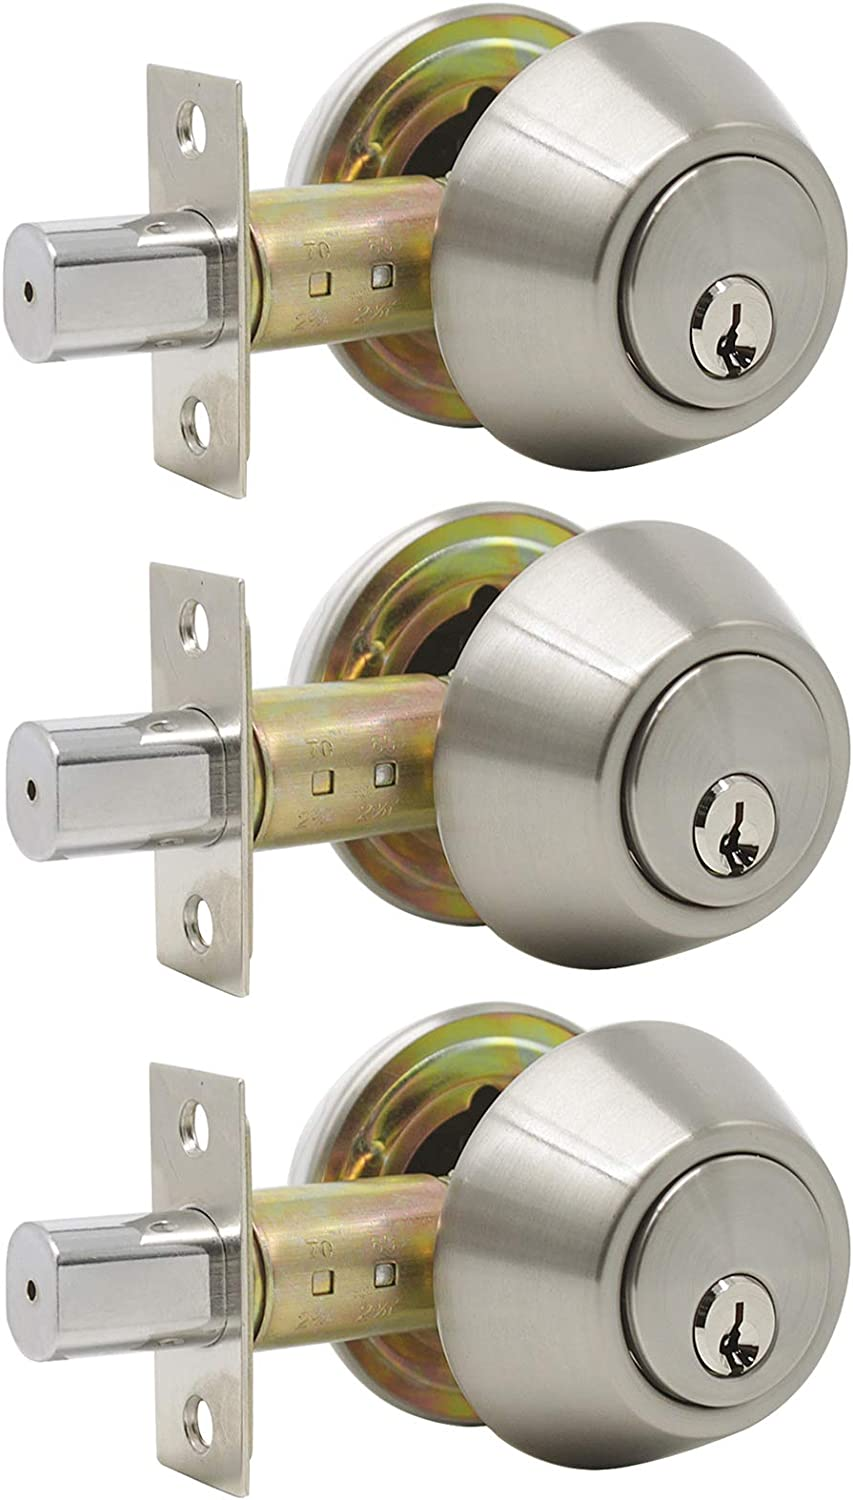 Gobrico 3 Keyed Alike Satin Nickel Keyed Single Deadbolts Door Locks with Same Key,Thumb-Turn Button Inside